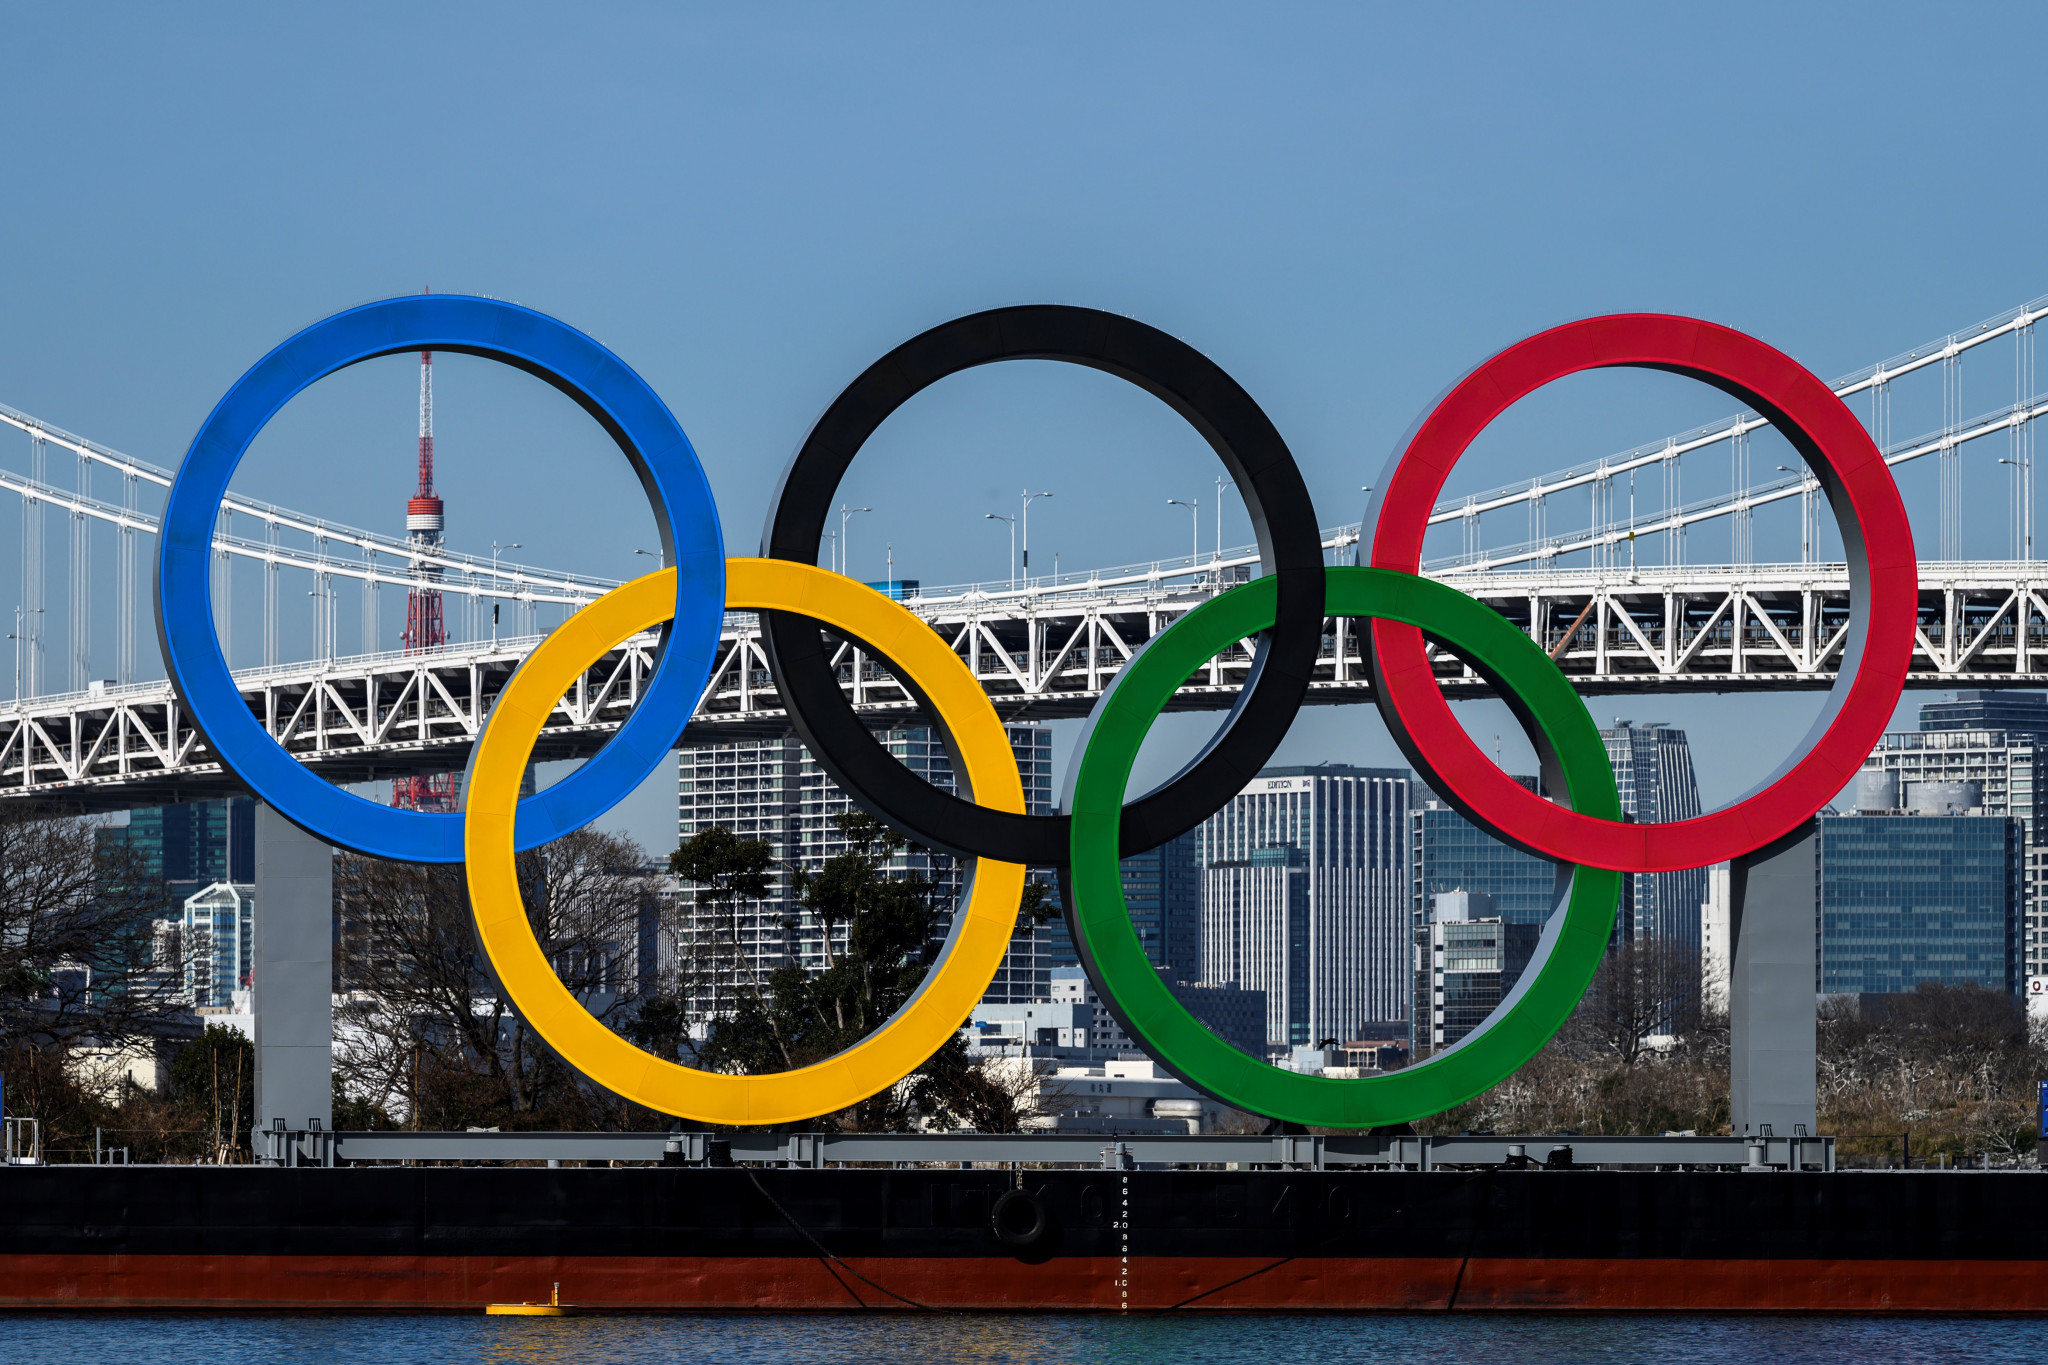 Tokyo 2020 sets criteria for appointment of new President